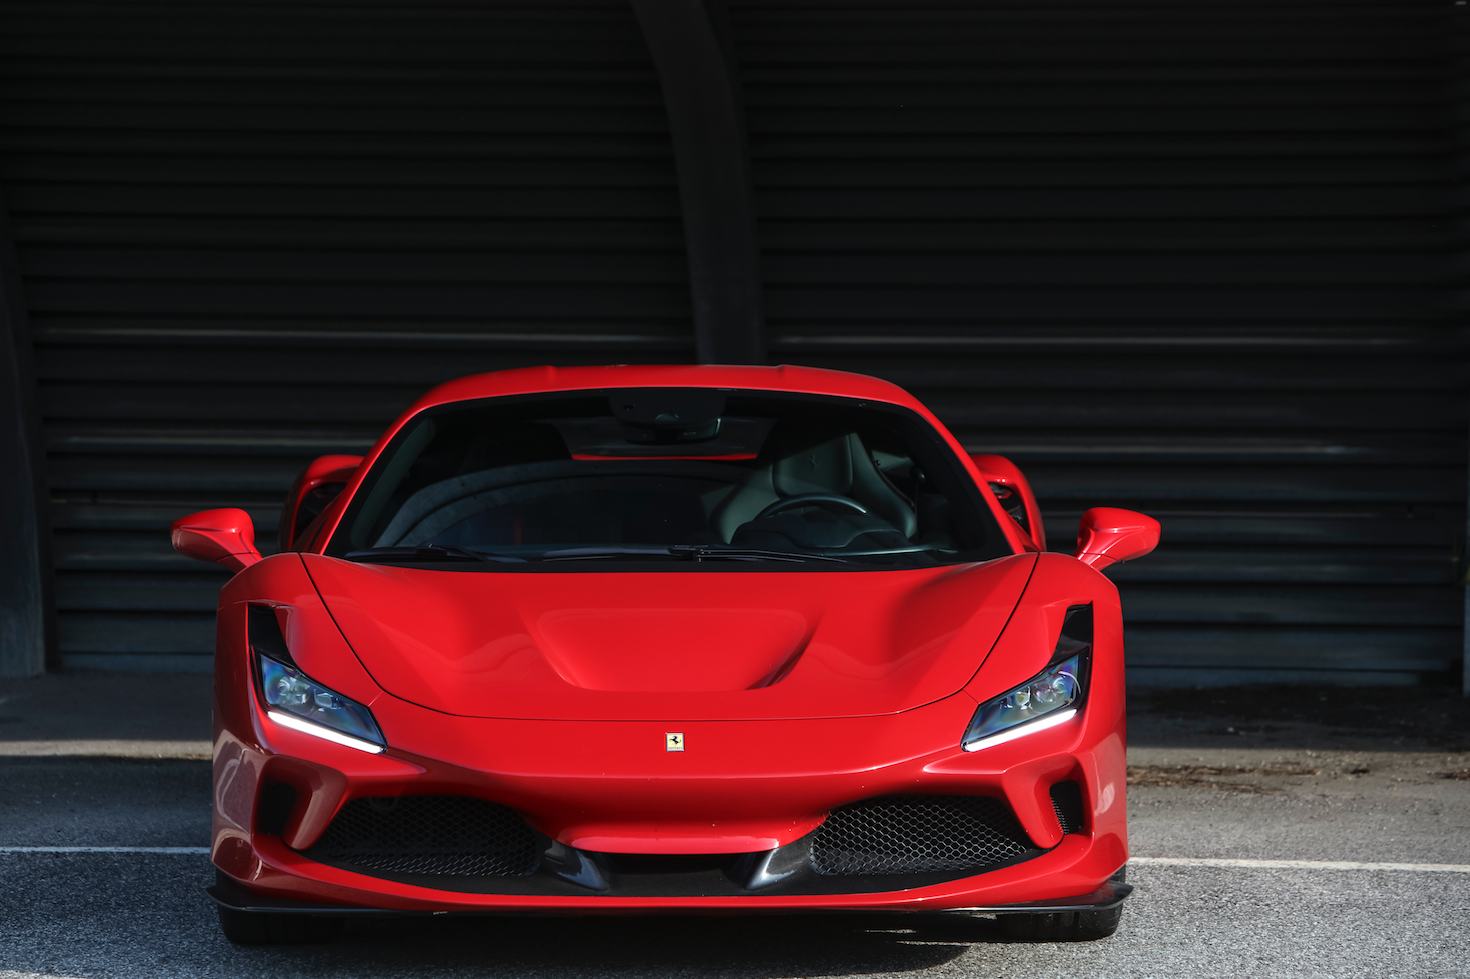 Does Ferrari's F8 Tributo Carry The Torch For Its Successful V8 Engine Model Line Or Extinguish It?